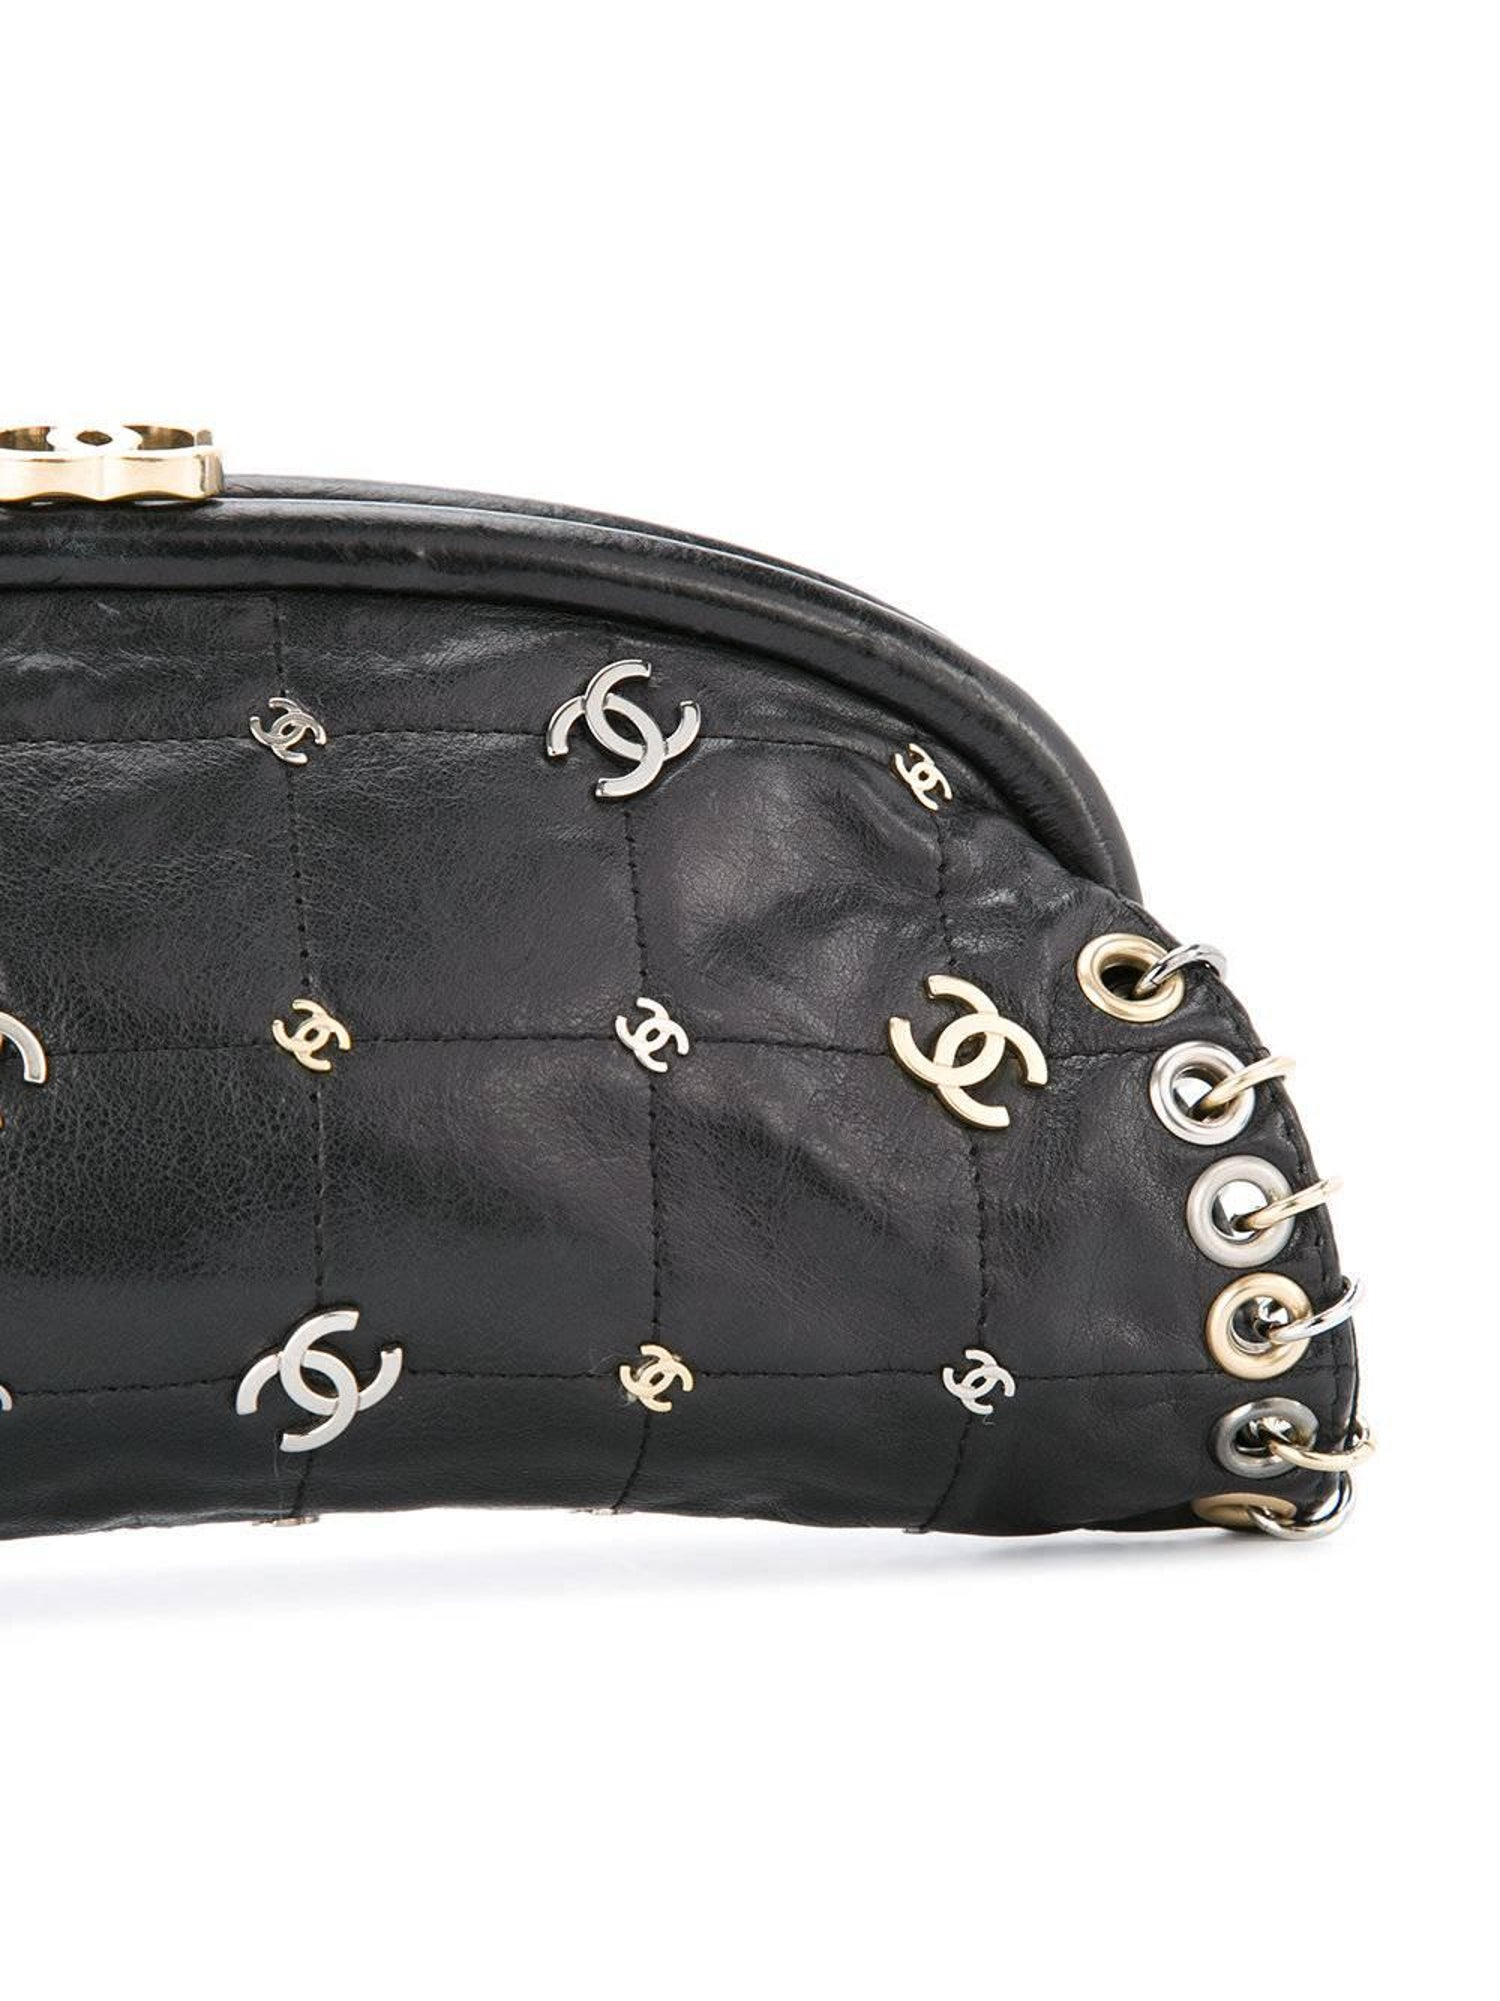 7959ccd6d971 Chanel Leather Mixed Metal Gold Silver Charm Kisslock Evening Clutch Bag  For Sale at 1stdibs